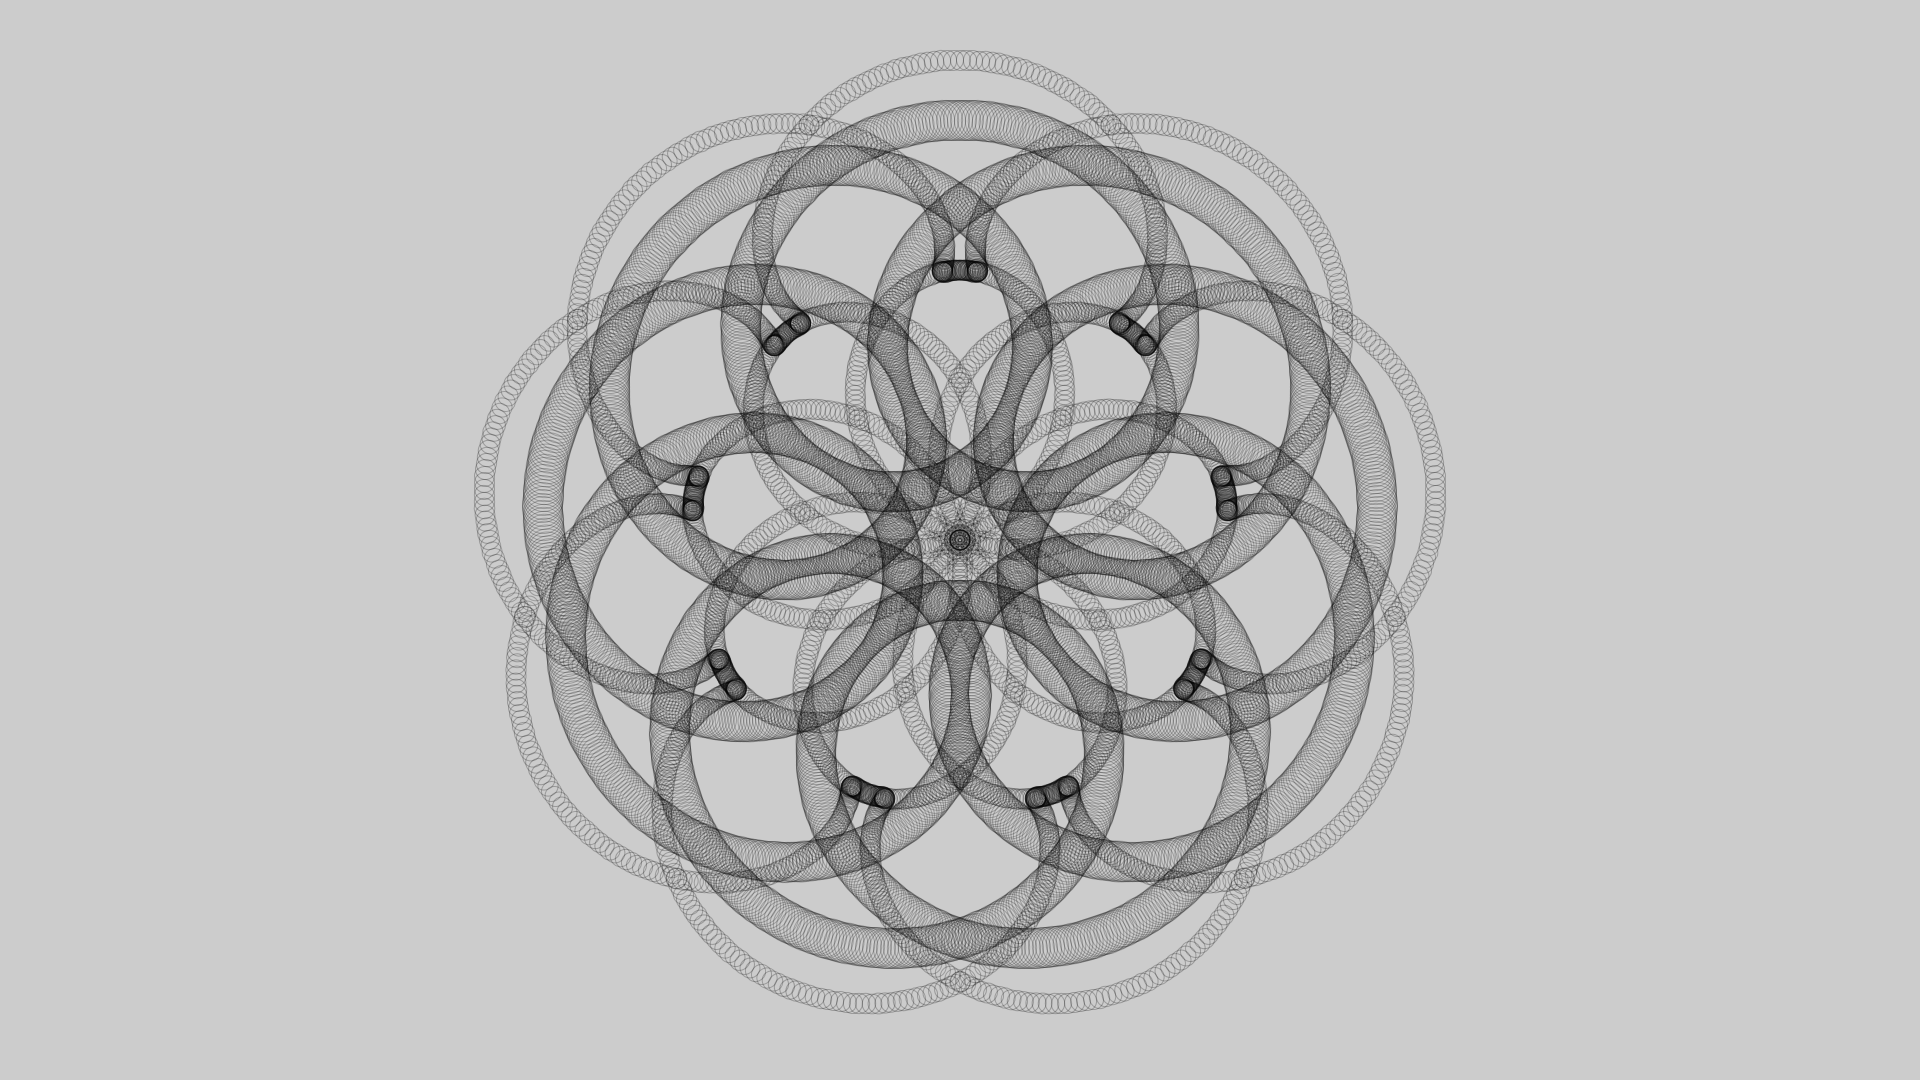 orrery-2015-3-23-12-16-383600-400-200.png